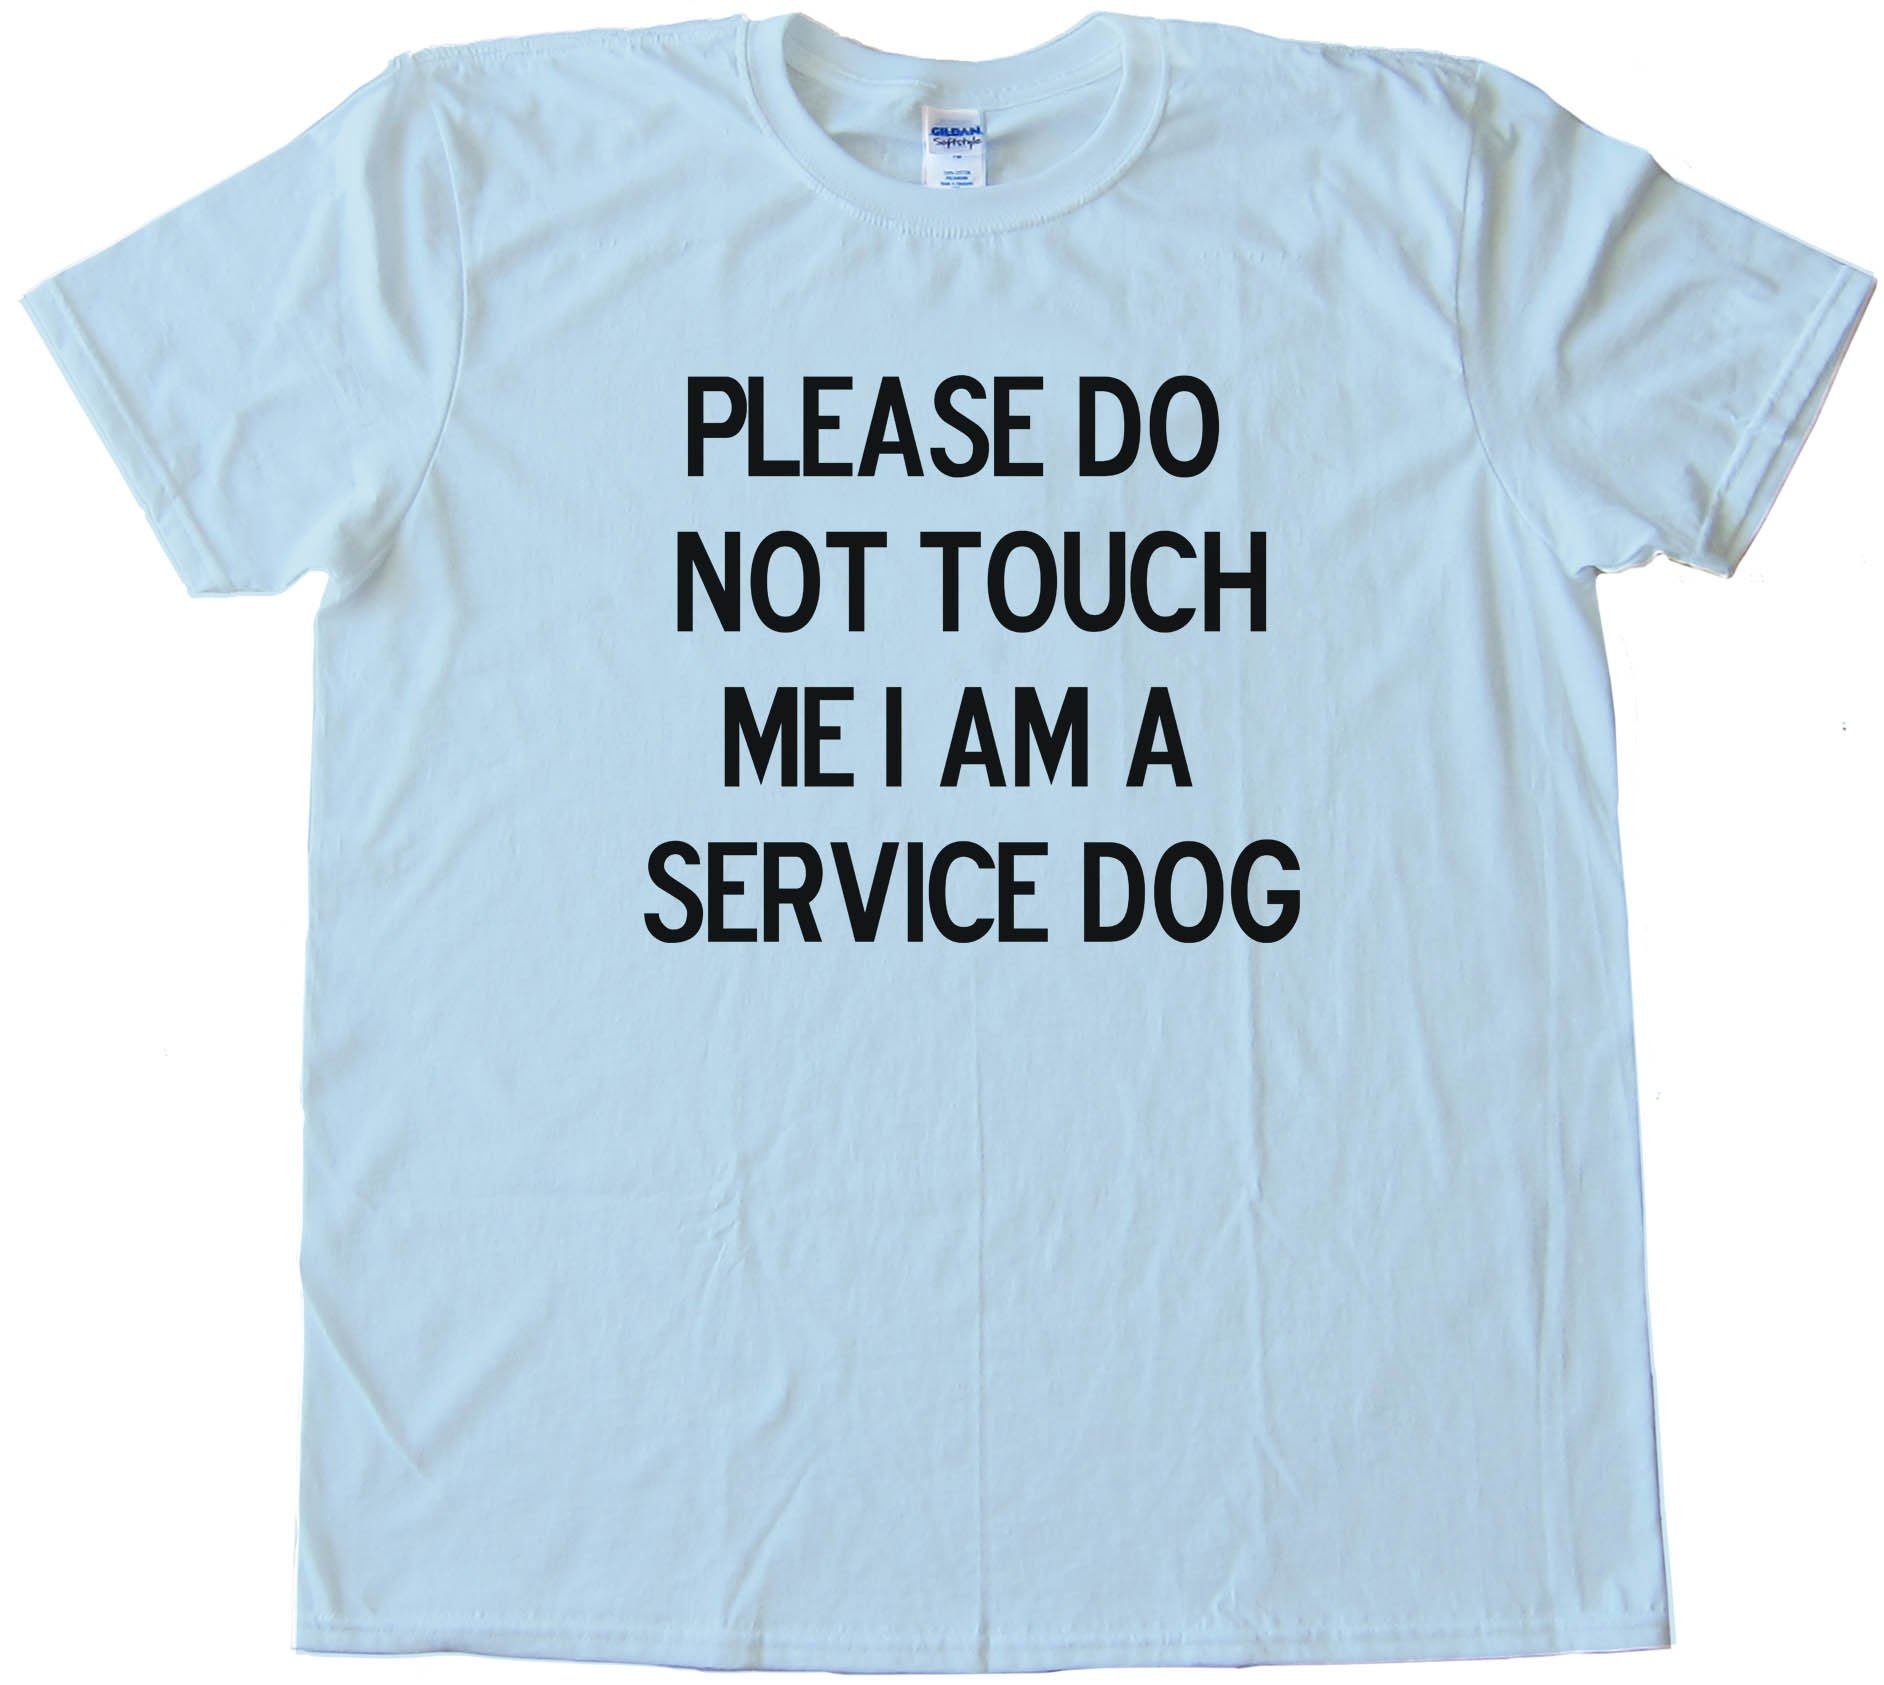 Please Do Not Touch Me I Am A Service Dog - Tee Shirt